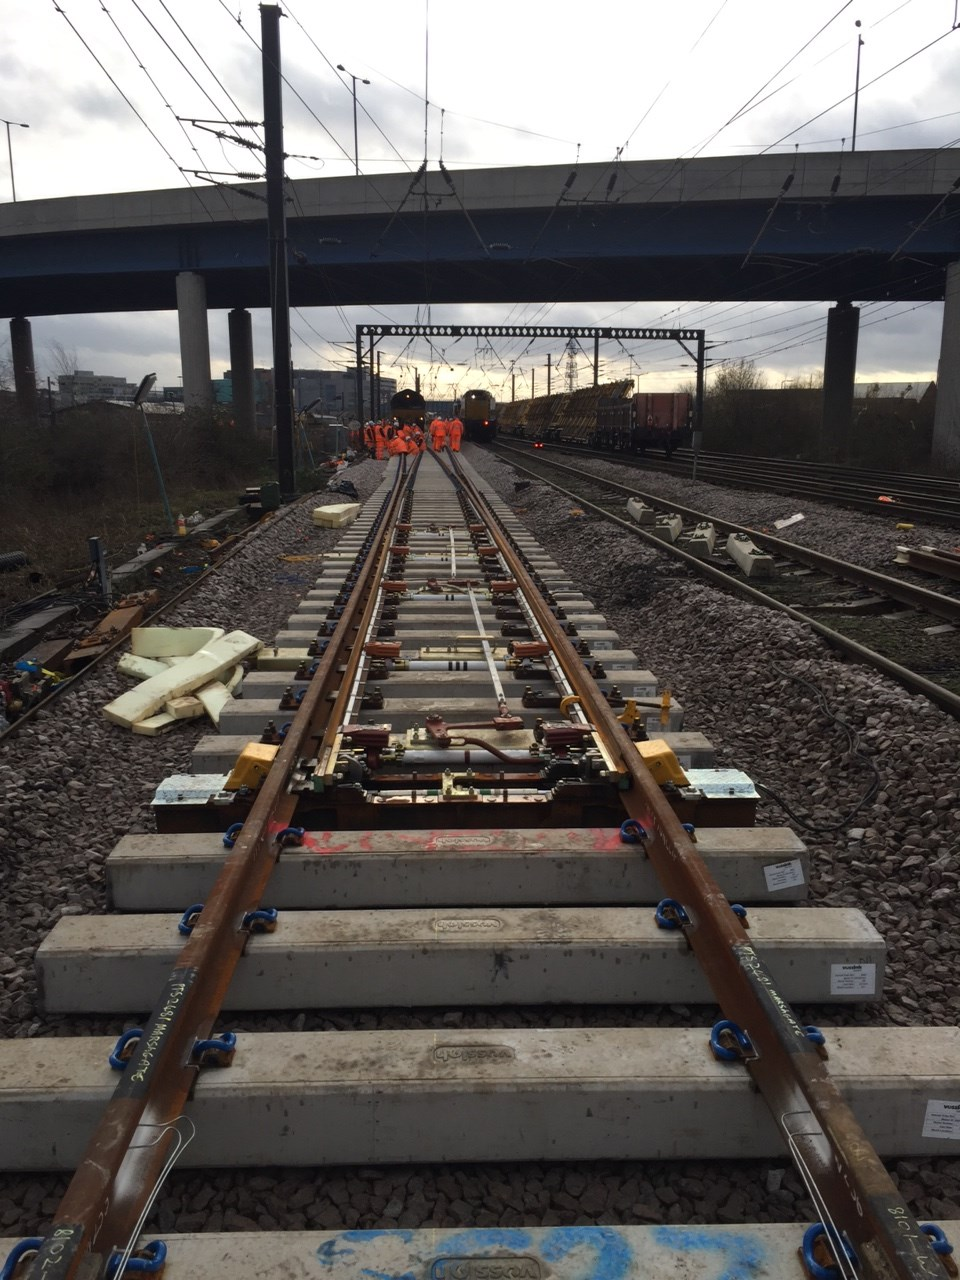 Countdown to Easter and early May bank holiday: passengers reminded to check before they travel: New points installed at Doncaster Marshgate